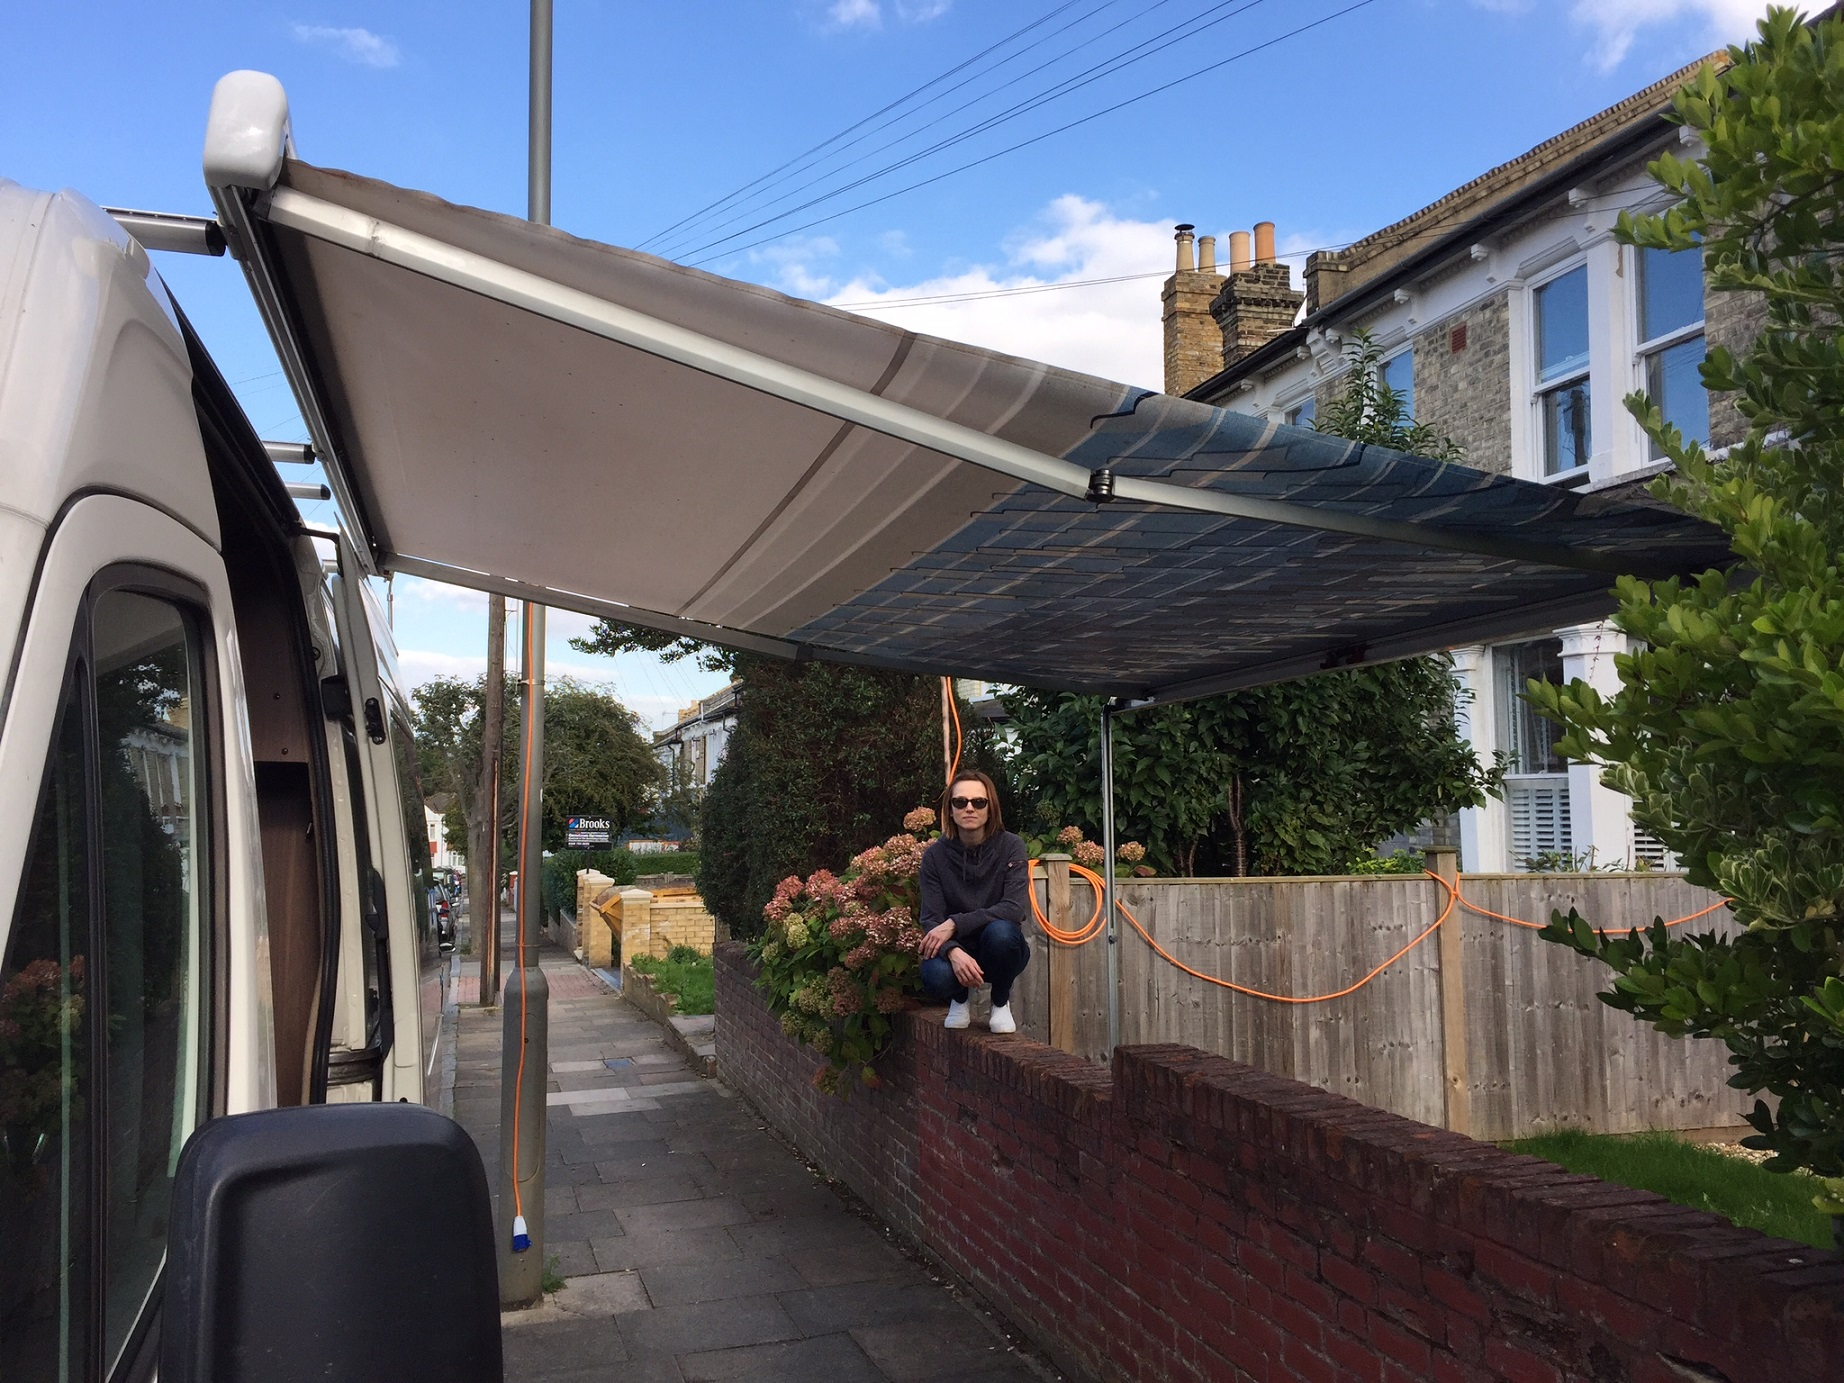 VW Crafter Van Conversion Roof Bars Box And Awning